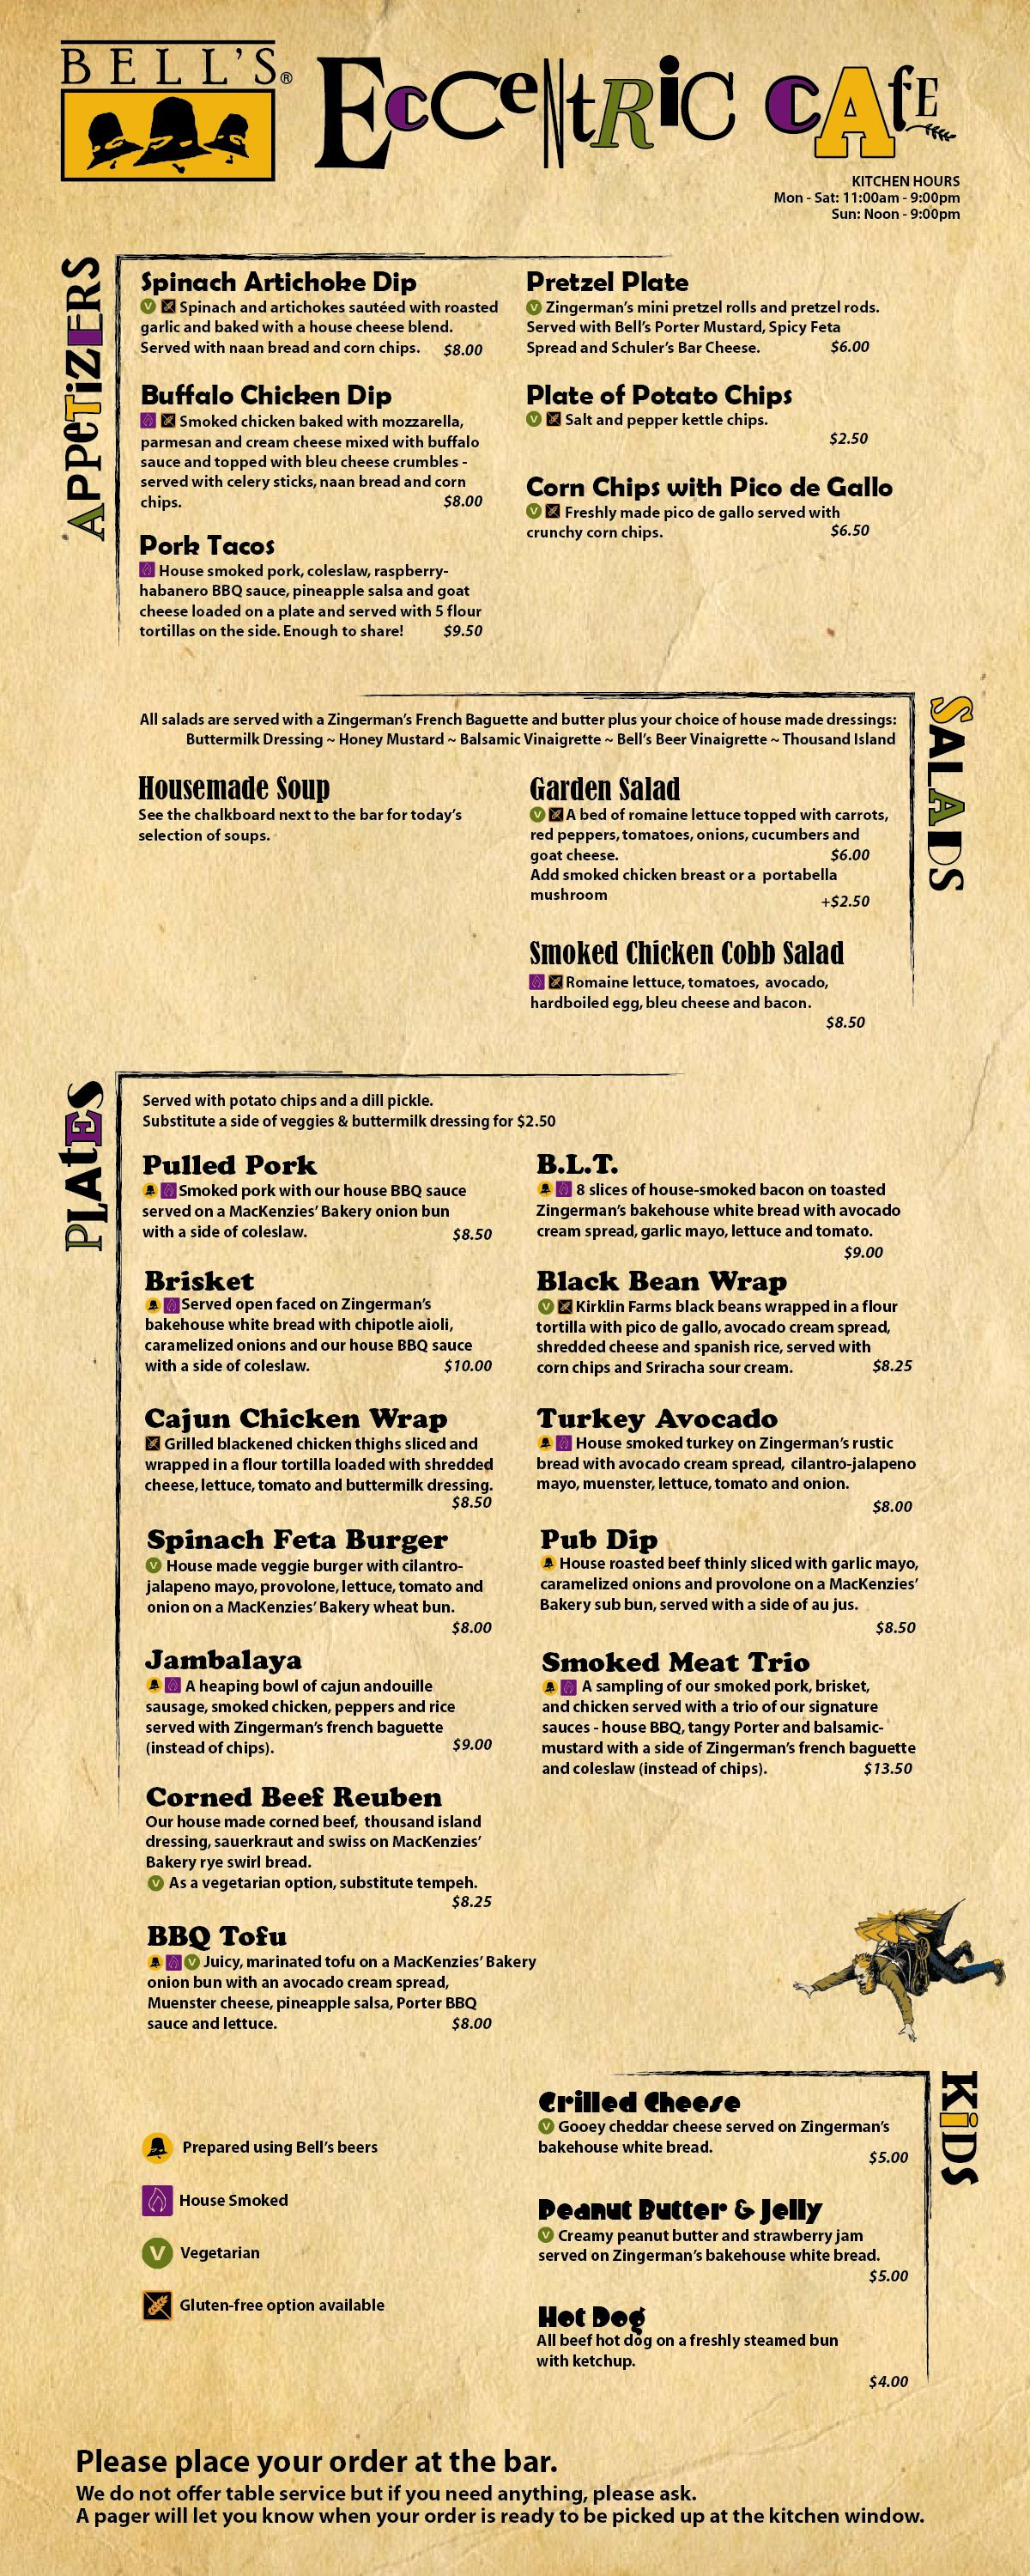 In addition to gluten free vegetarian and house smoked items the eccentric cafe menu also features dishes made with our beer